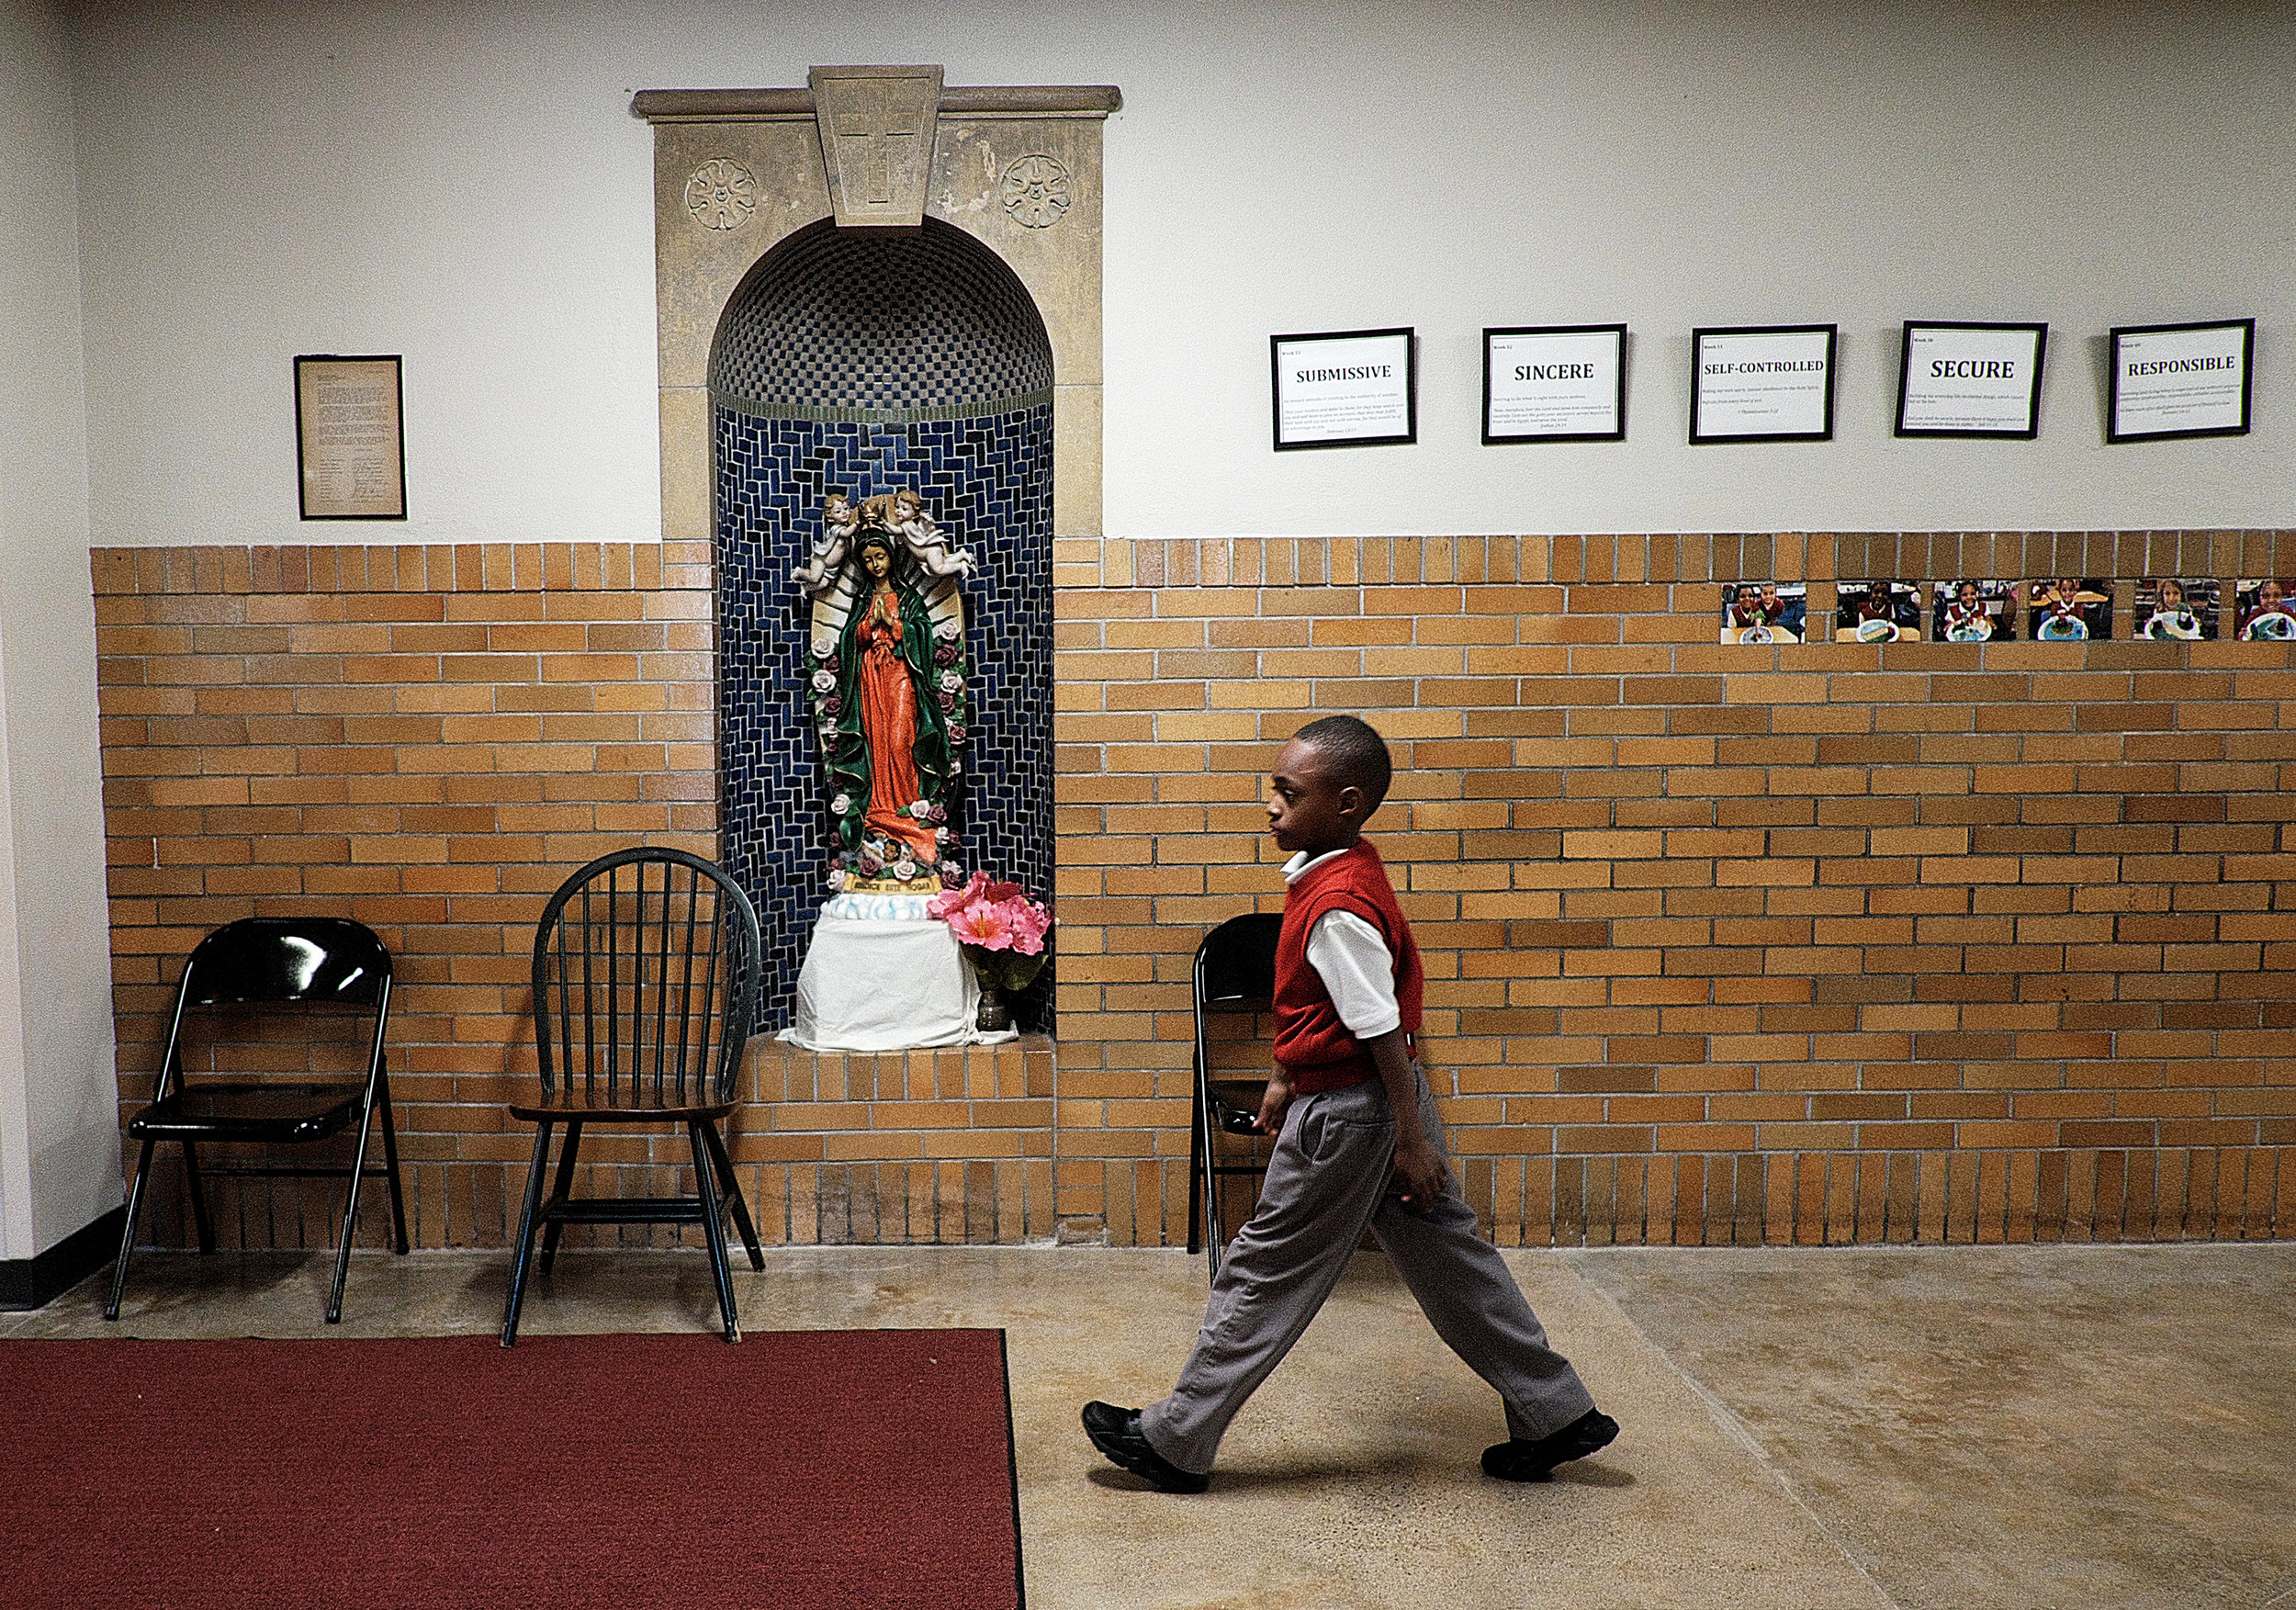 First-grader Mario Williams walks down the main hall at Ascension Catholic School, where expectations and values are posted on the wall.  Photo by David Pierini